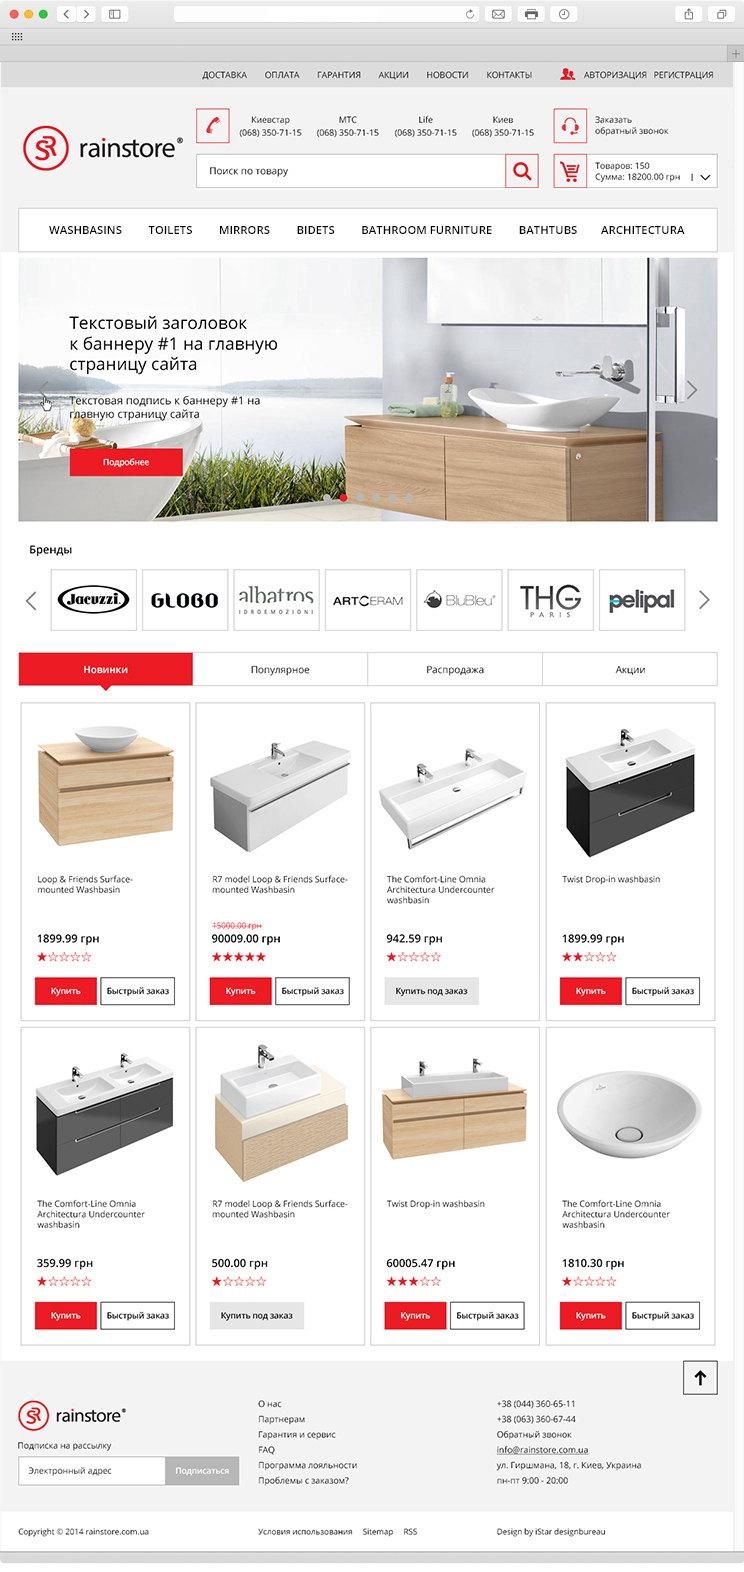 online store for sanitary ware and bathroom accessories